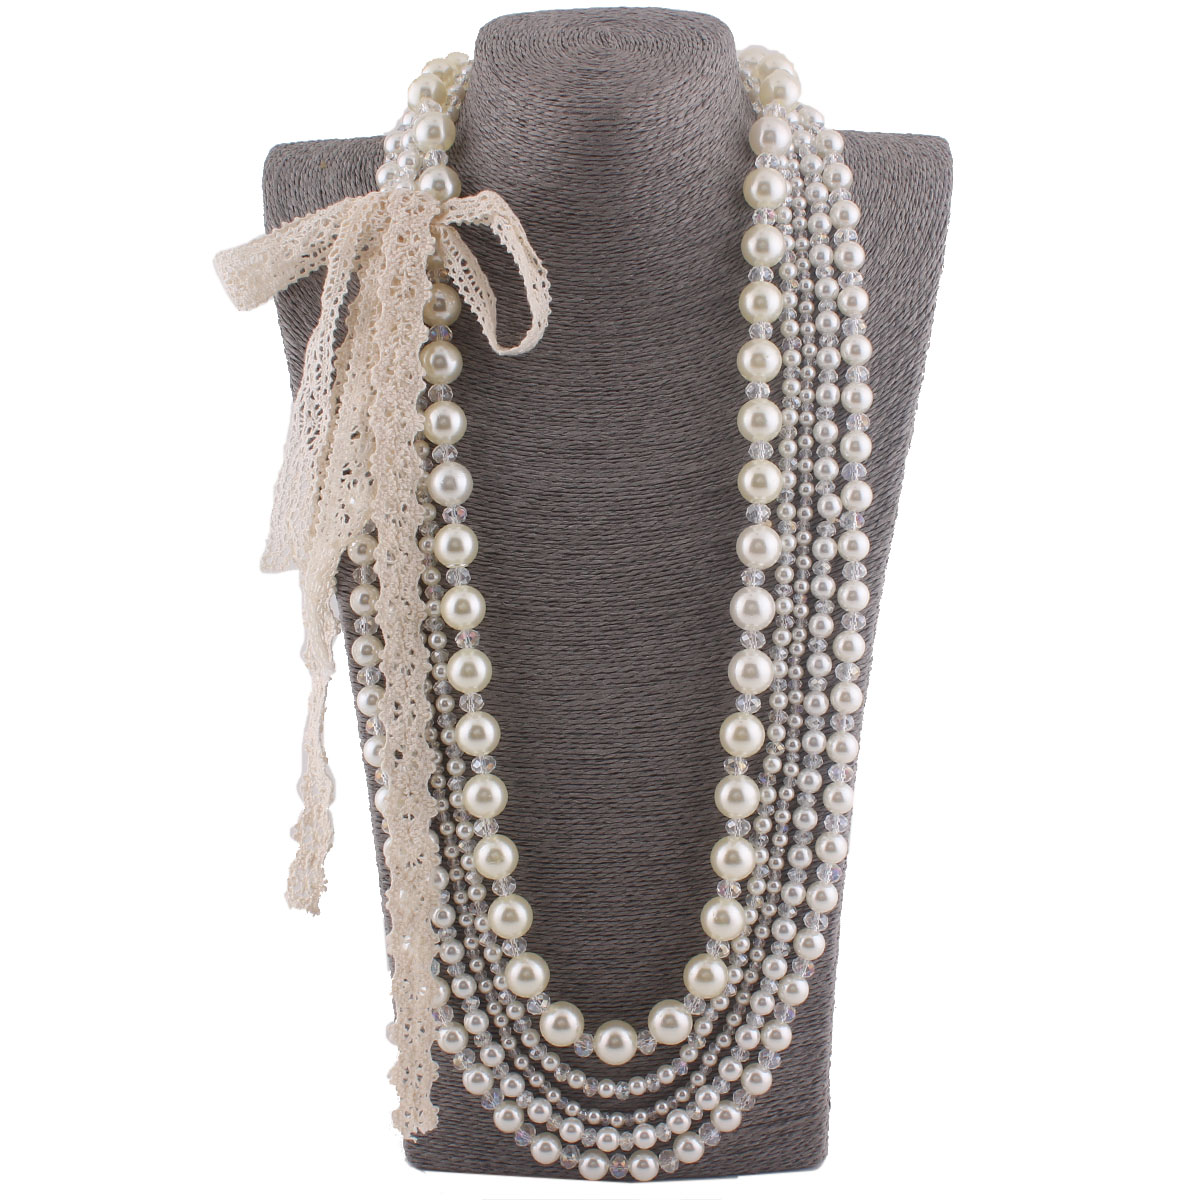 New Fashion Bridal Multistrand Faux Pearl Crystal Necklace For Women Kids  Party Handmade Beading